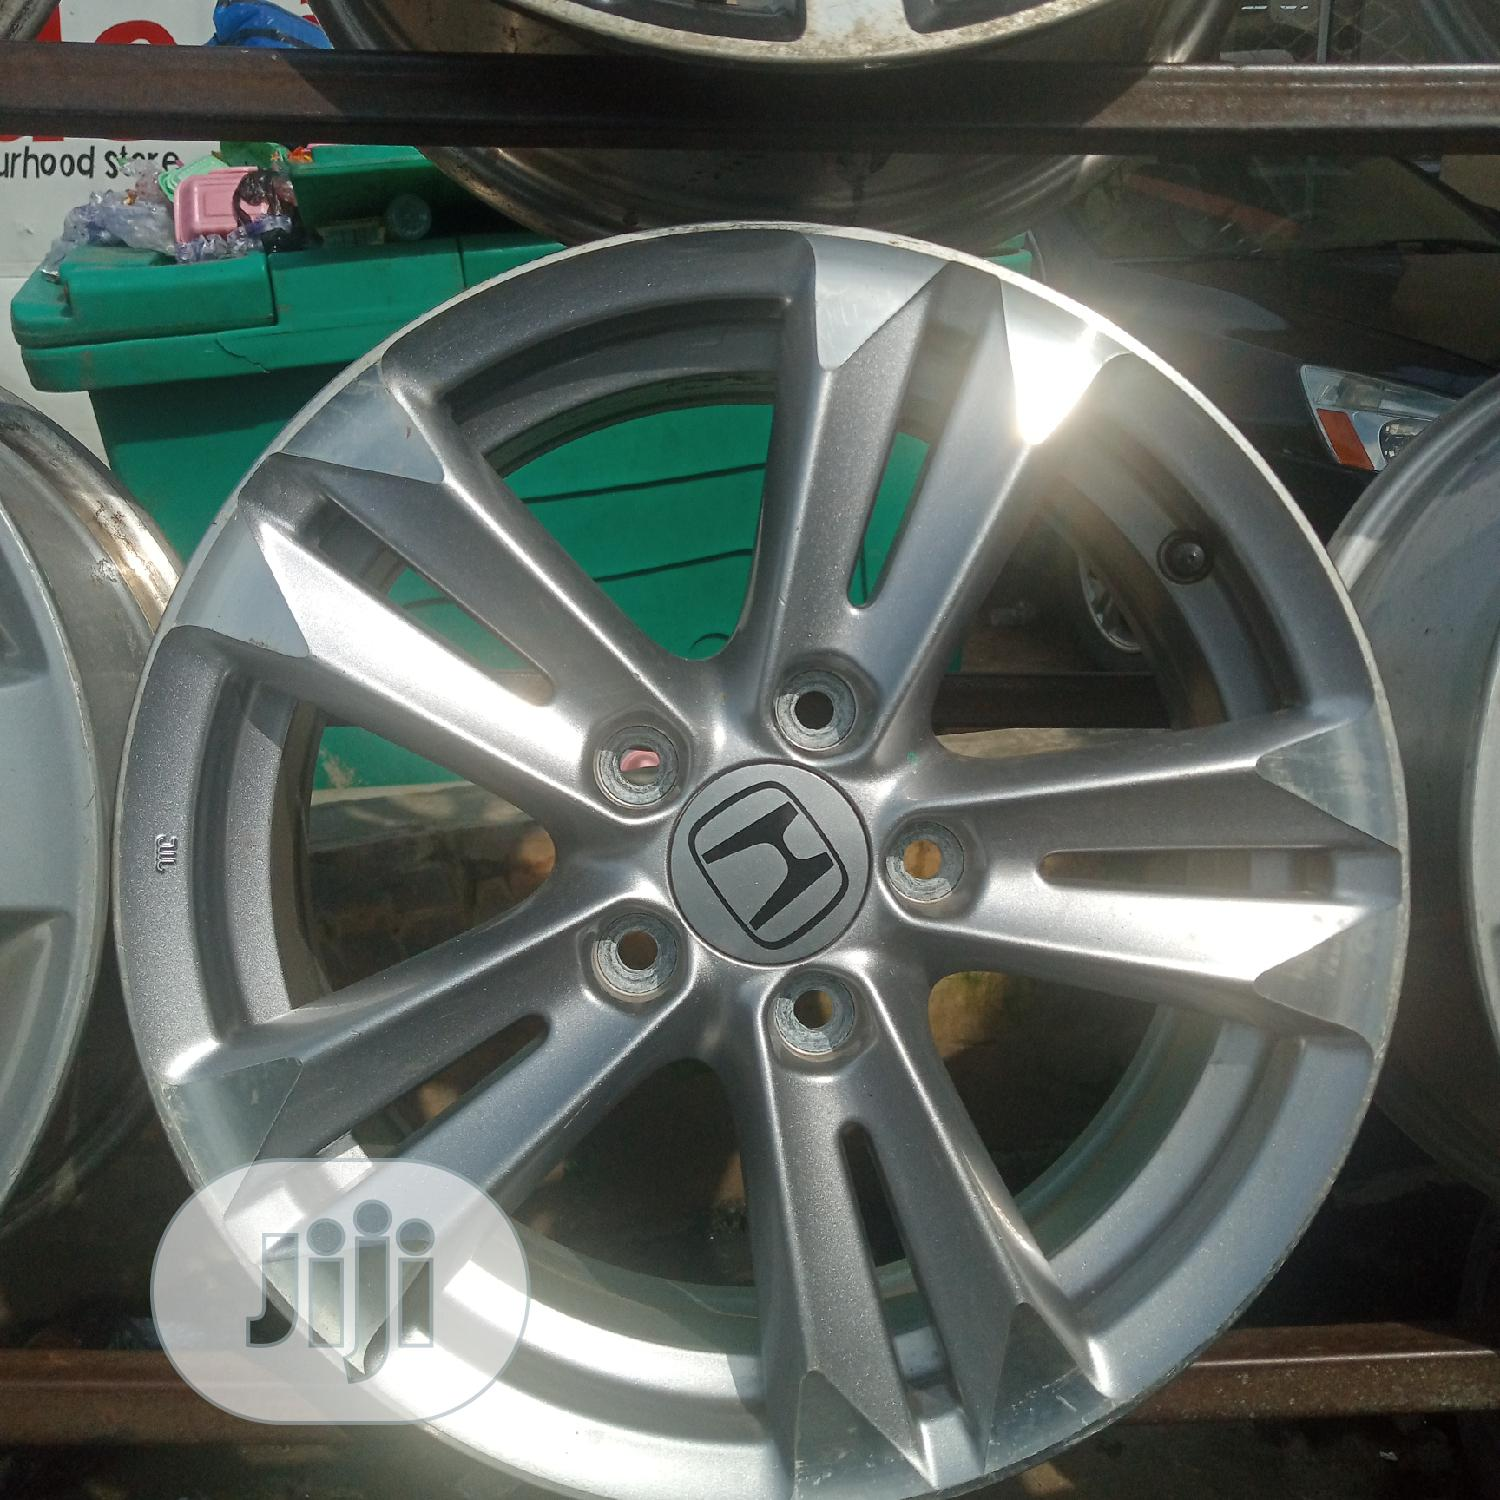 16 Rim For Honda | Vehicle Parts & Accessories for sale in Mushin, Lagos State, Nigeria